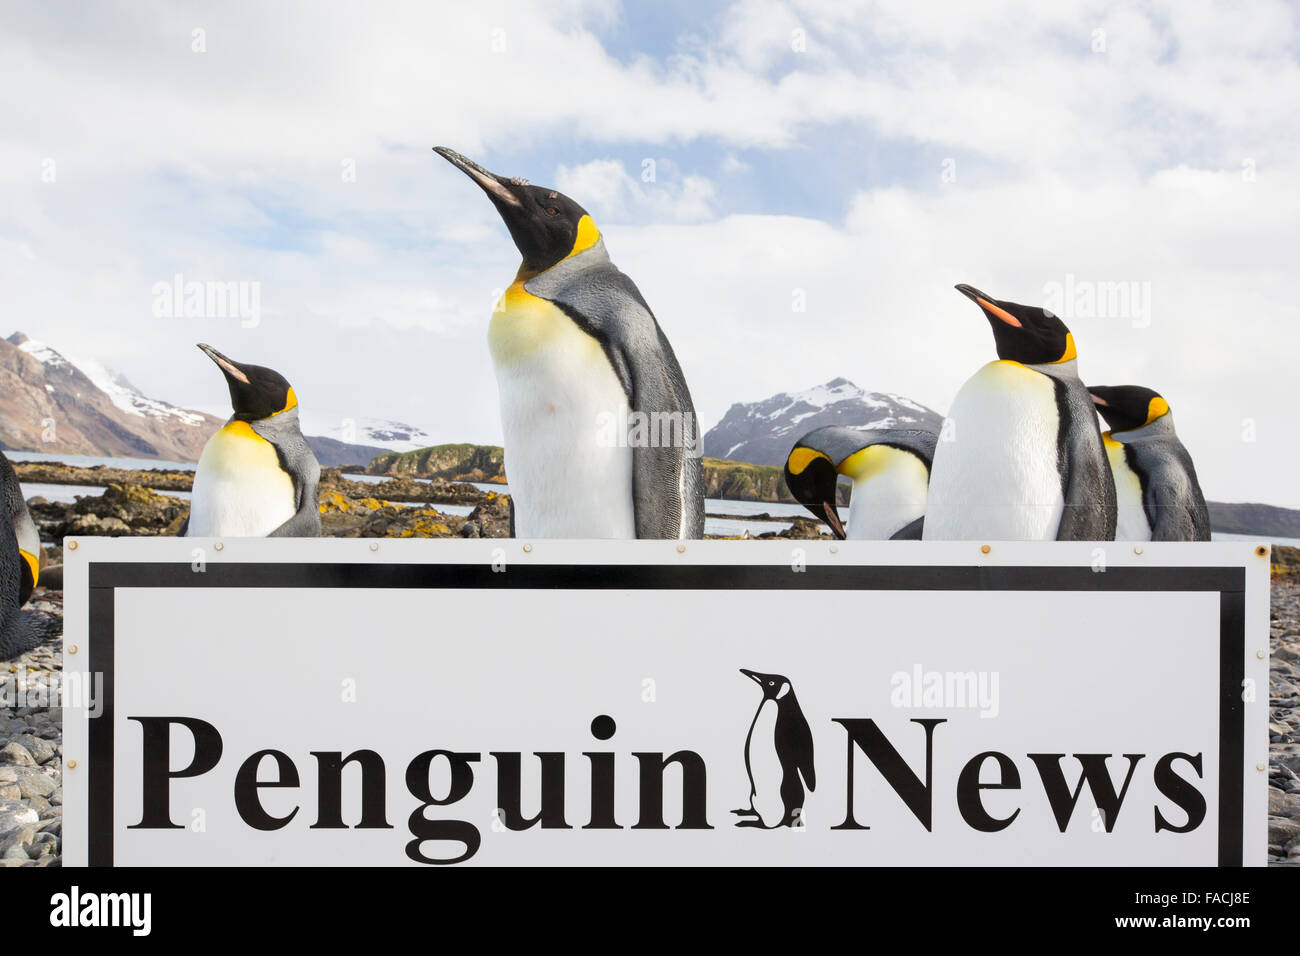 King Penguins on Prion Island, South Georgia, Southern Ocean with a penguin news hoarding composite. - Stock Image